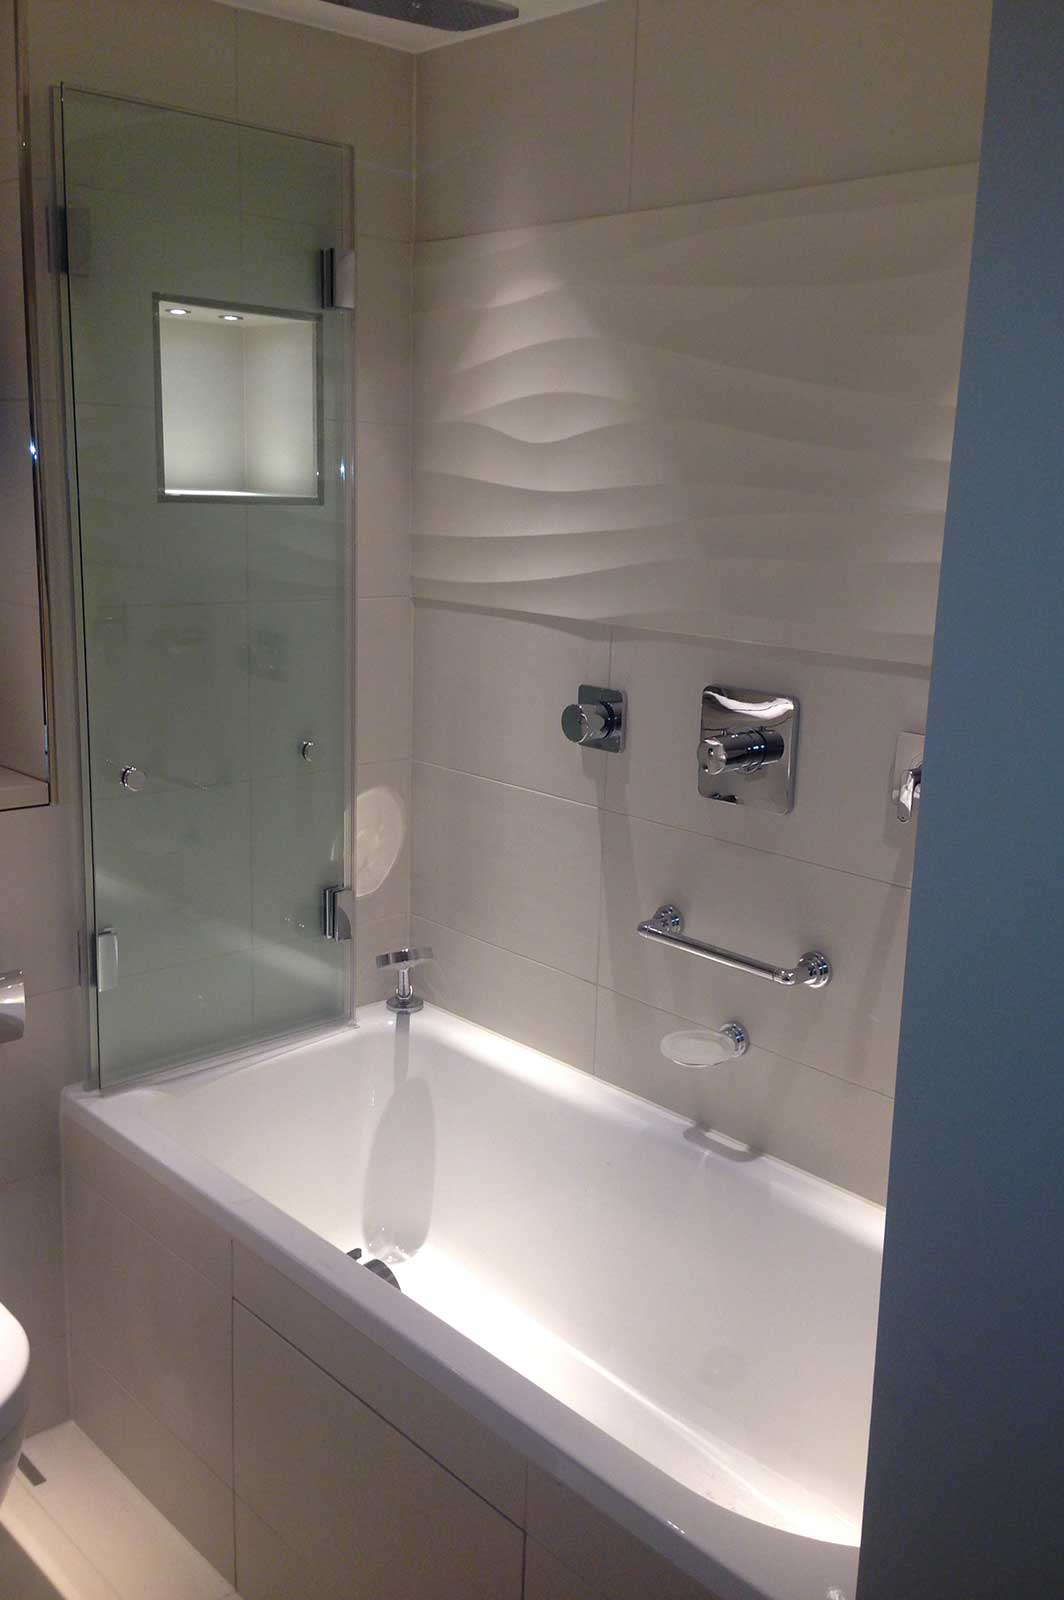 Bespoke Folding Bath Screen - Folded Flat to the Wall